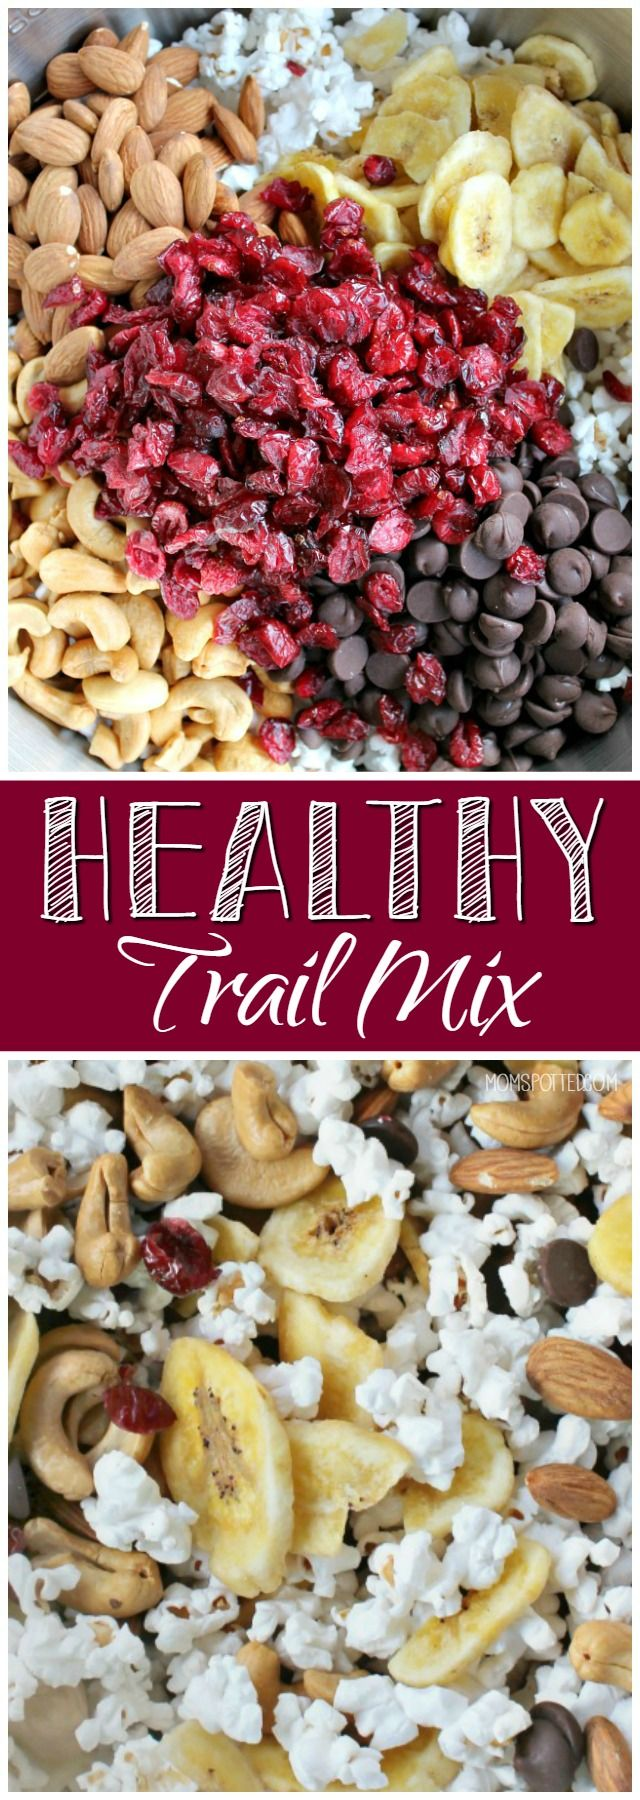 This Healthy Trail Mix is the perfect on-the-go snack to keep your appetite at bay. My kids even love it as an afternoon snack! AD #HPChallenge #HaveaJOLLYTIME